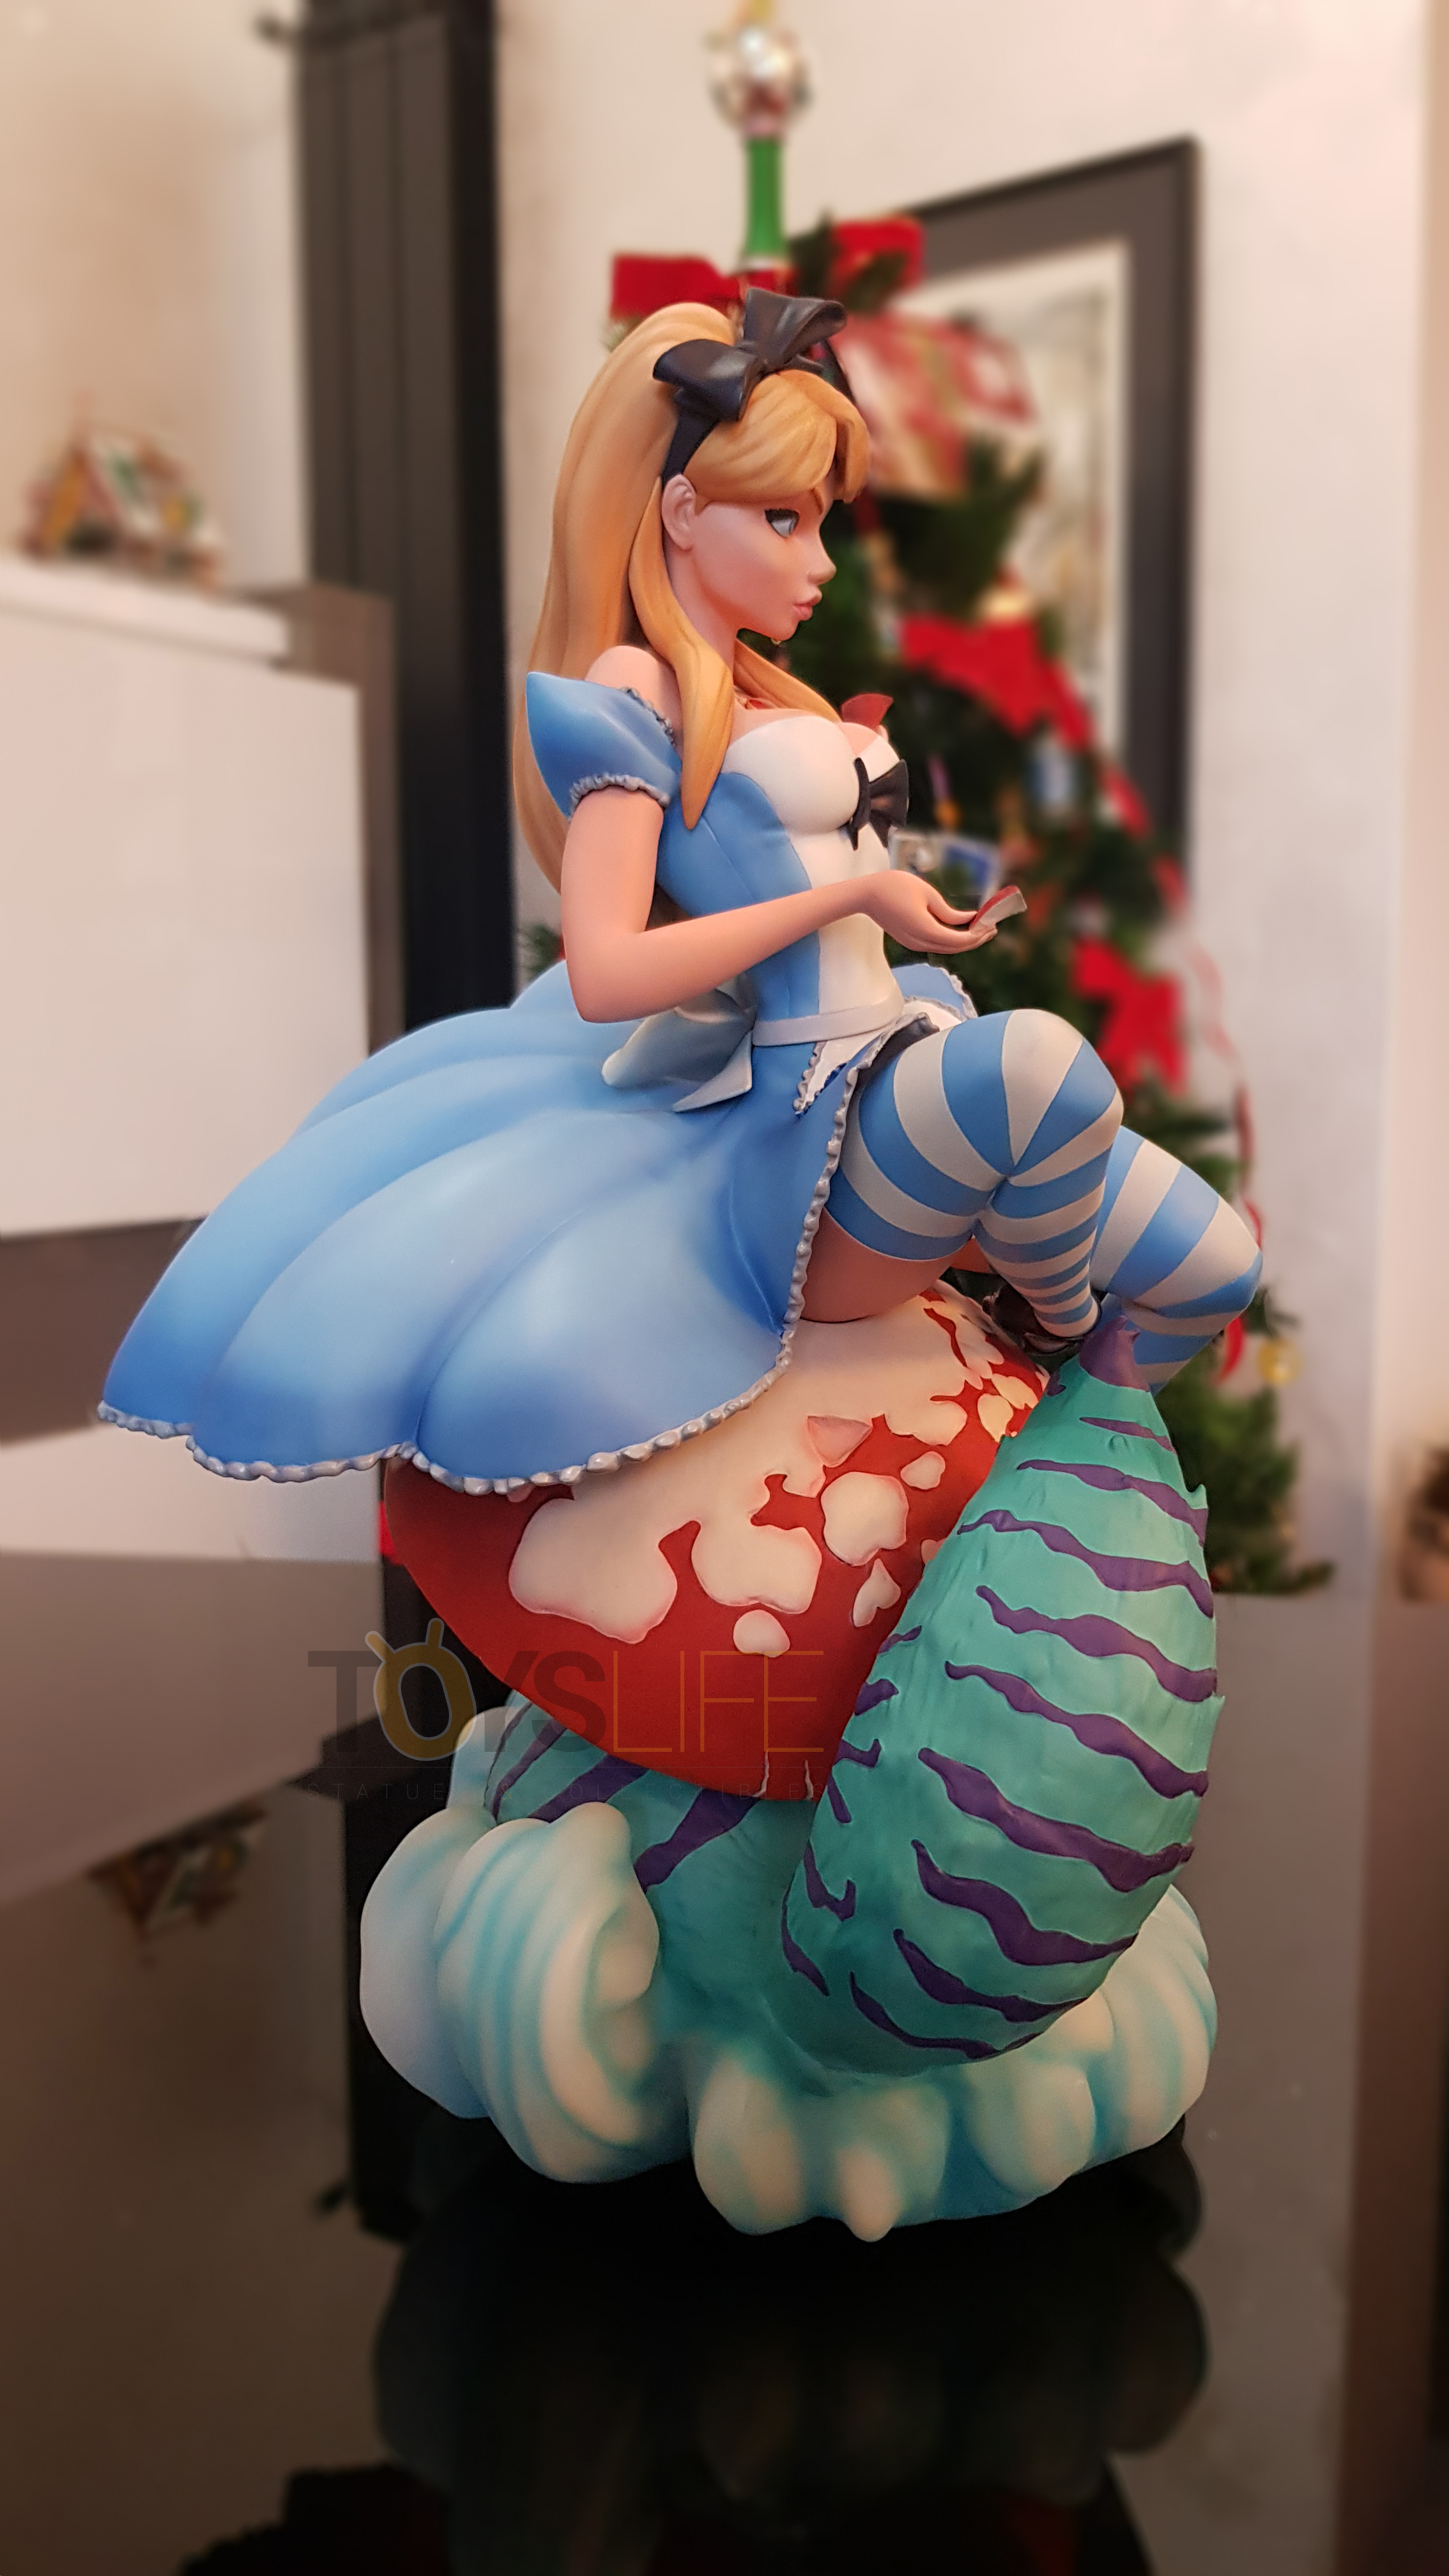 sideshow-fairytale-fantasies-jscampbell-alice-exclusive-statue-toyslife-review-02